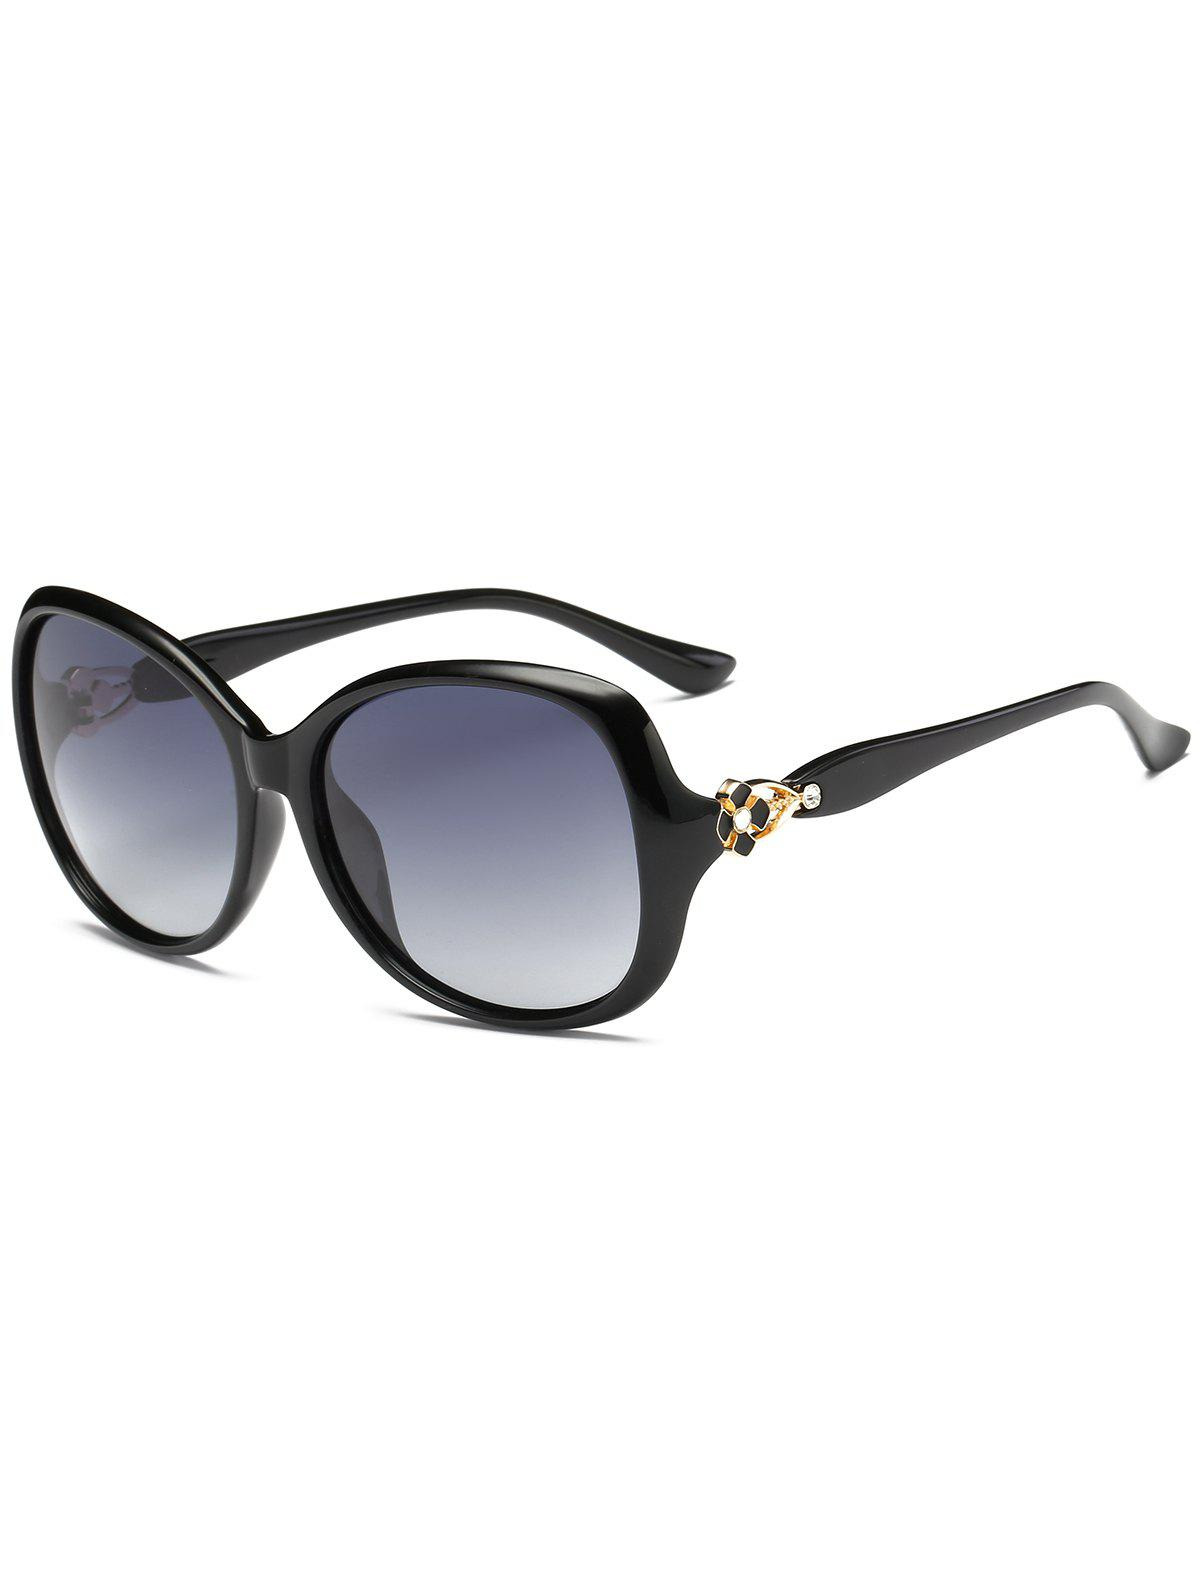 Fashion Vintage Metal Floral Embellished Oversized Sunglasses